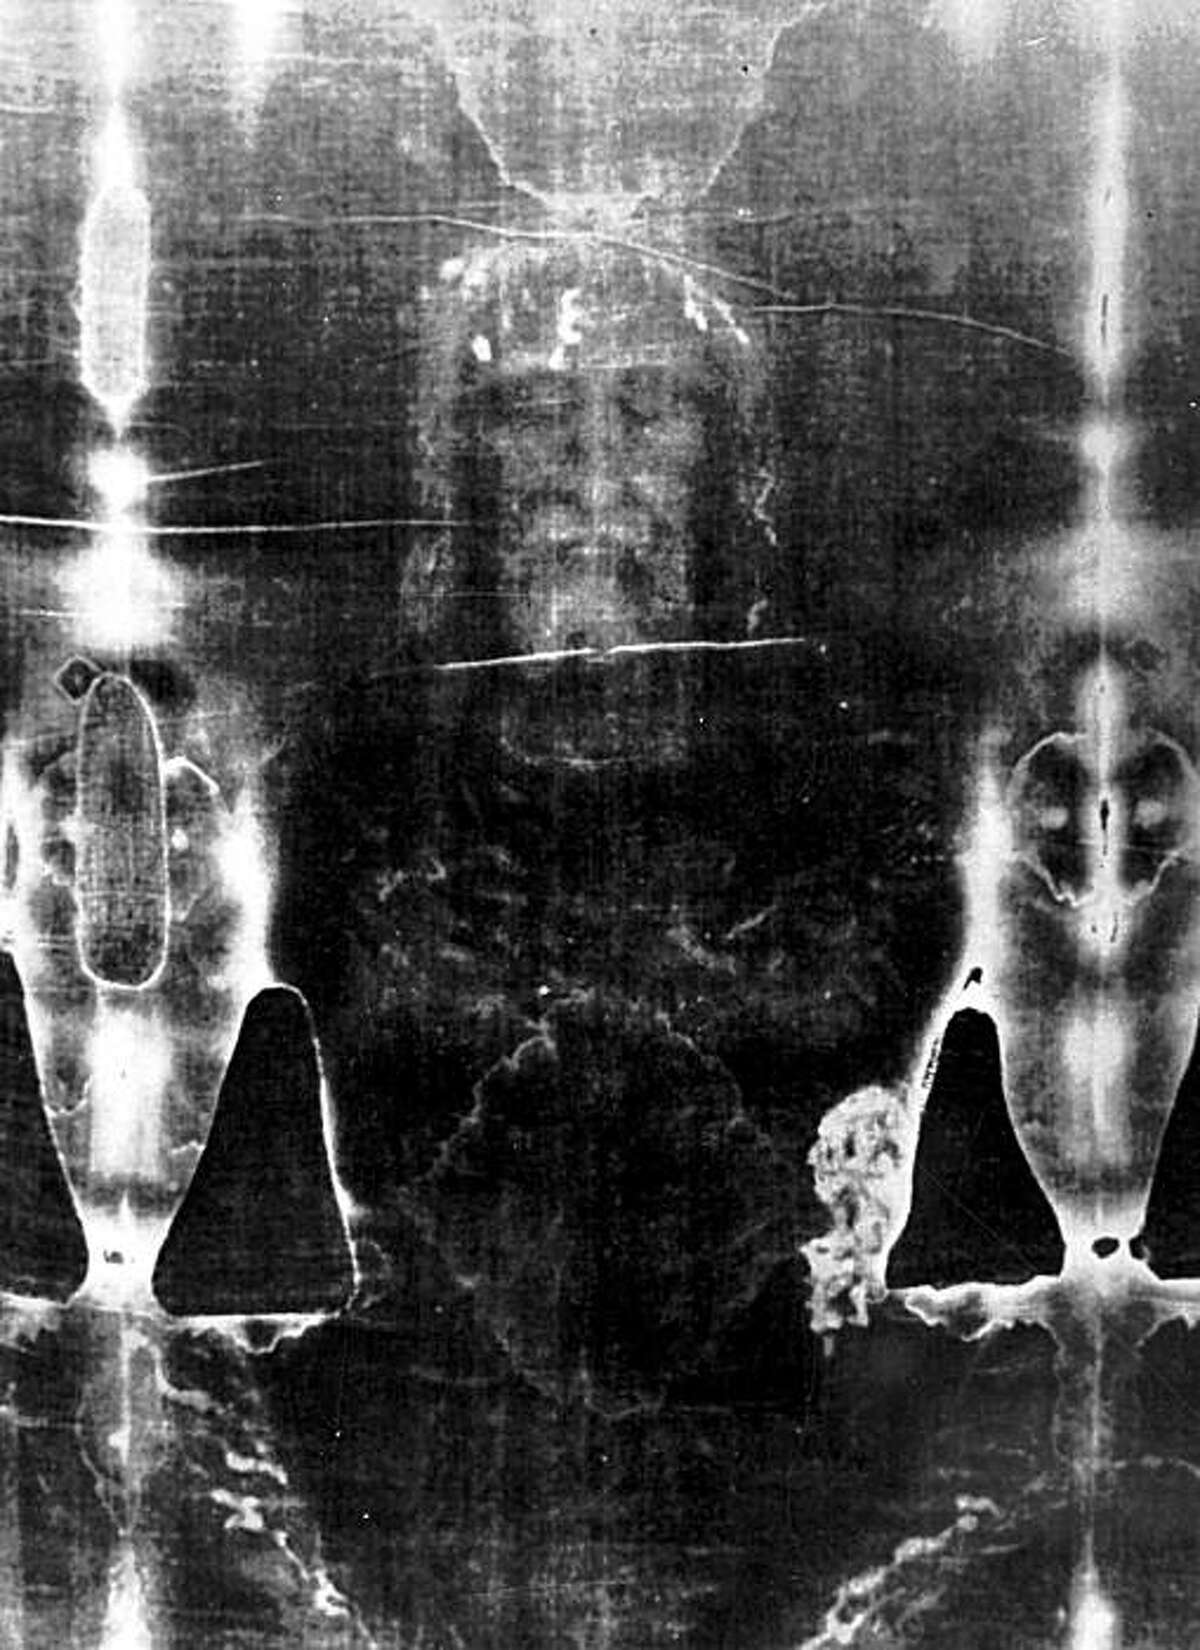 The Shroud of Turin from a file photo taken in 1979.